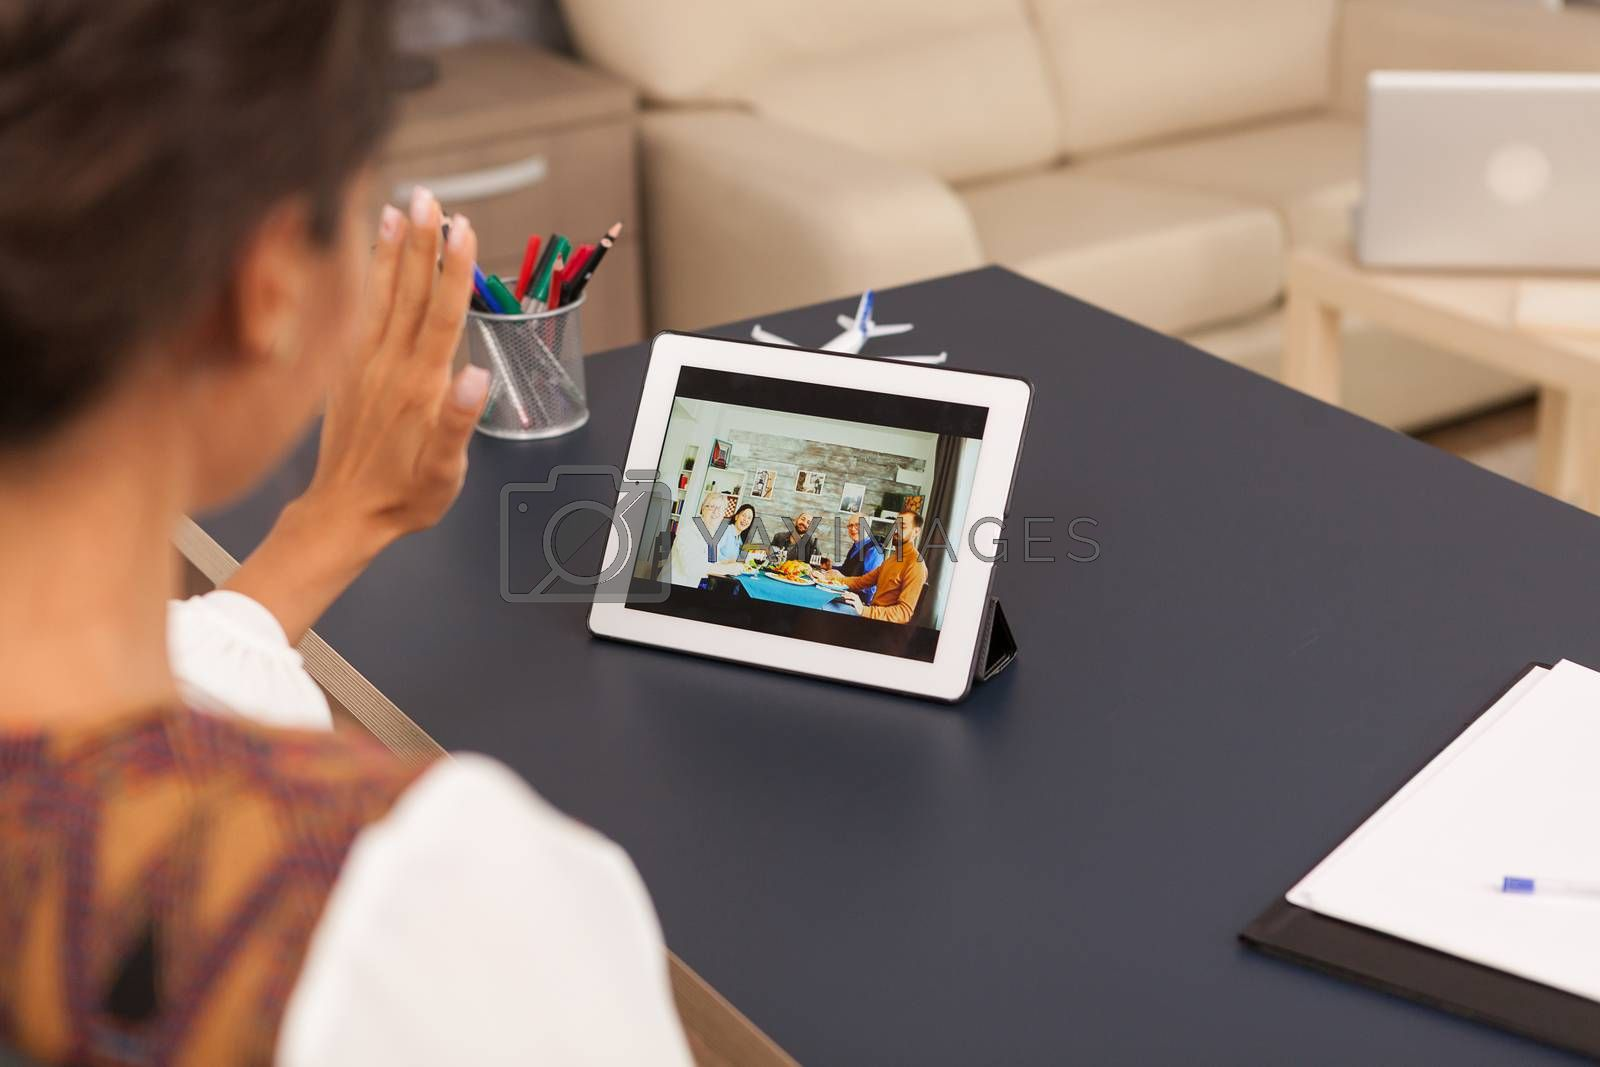 Waving at family during a video call on tablet computer.